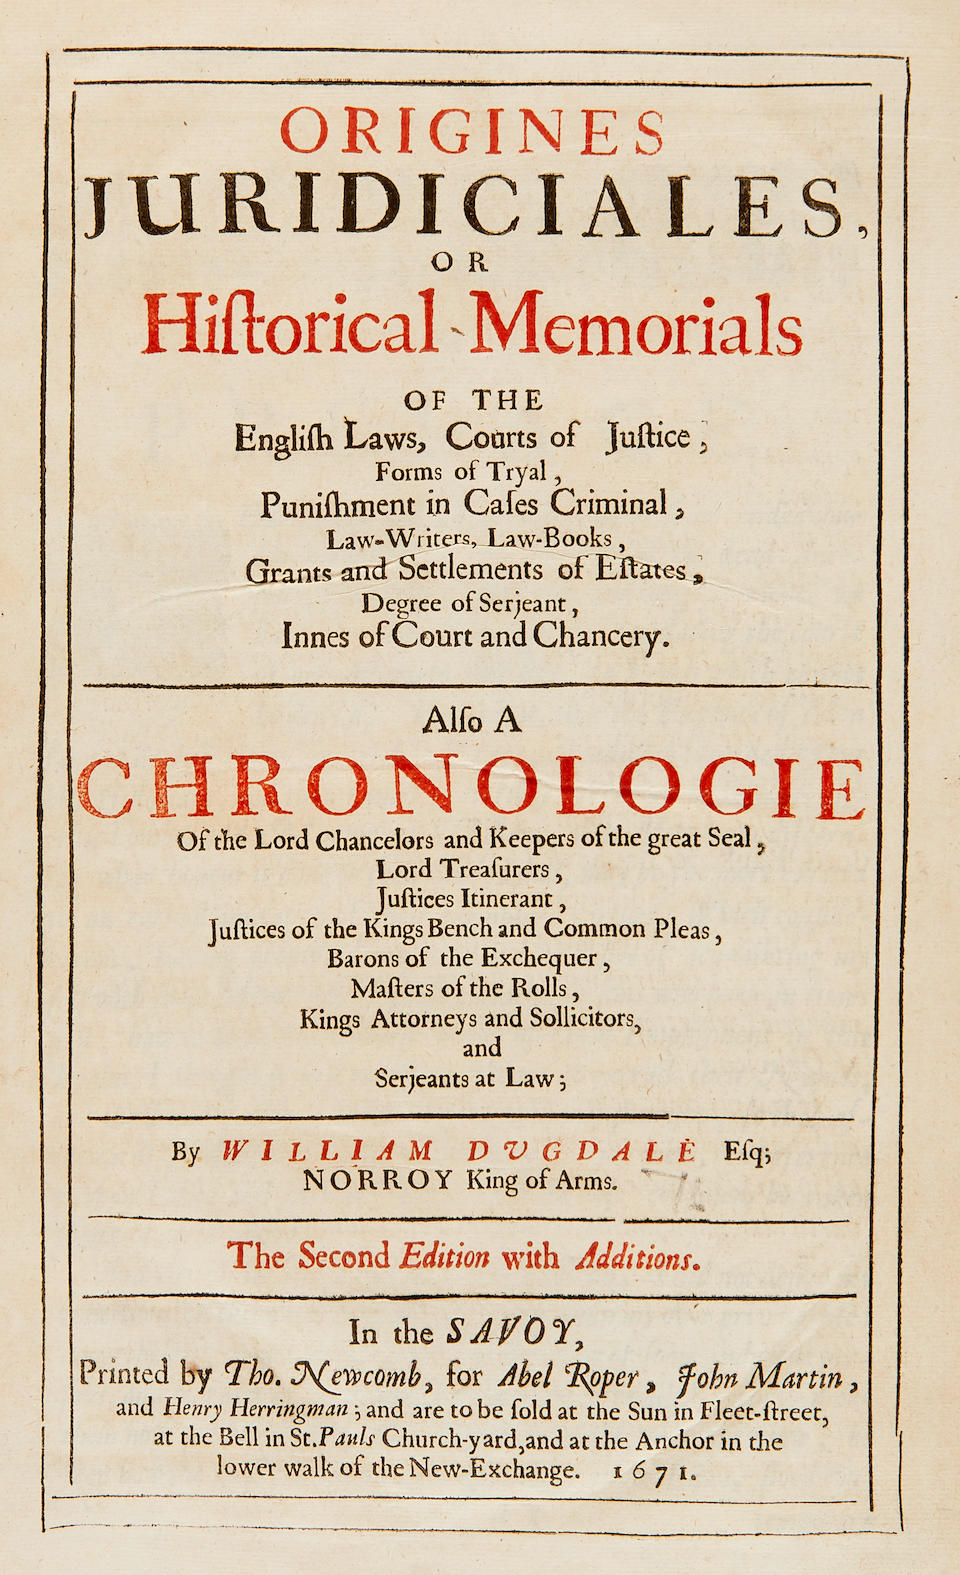 DUGDALE, WILLIAM. 1605-1686. Origines juridiciales, or Historical Memorials of the English Laws. London: Thomas Newcomb for Abel Roper, John Martin and Henry Harringman, 1671.